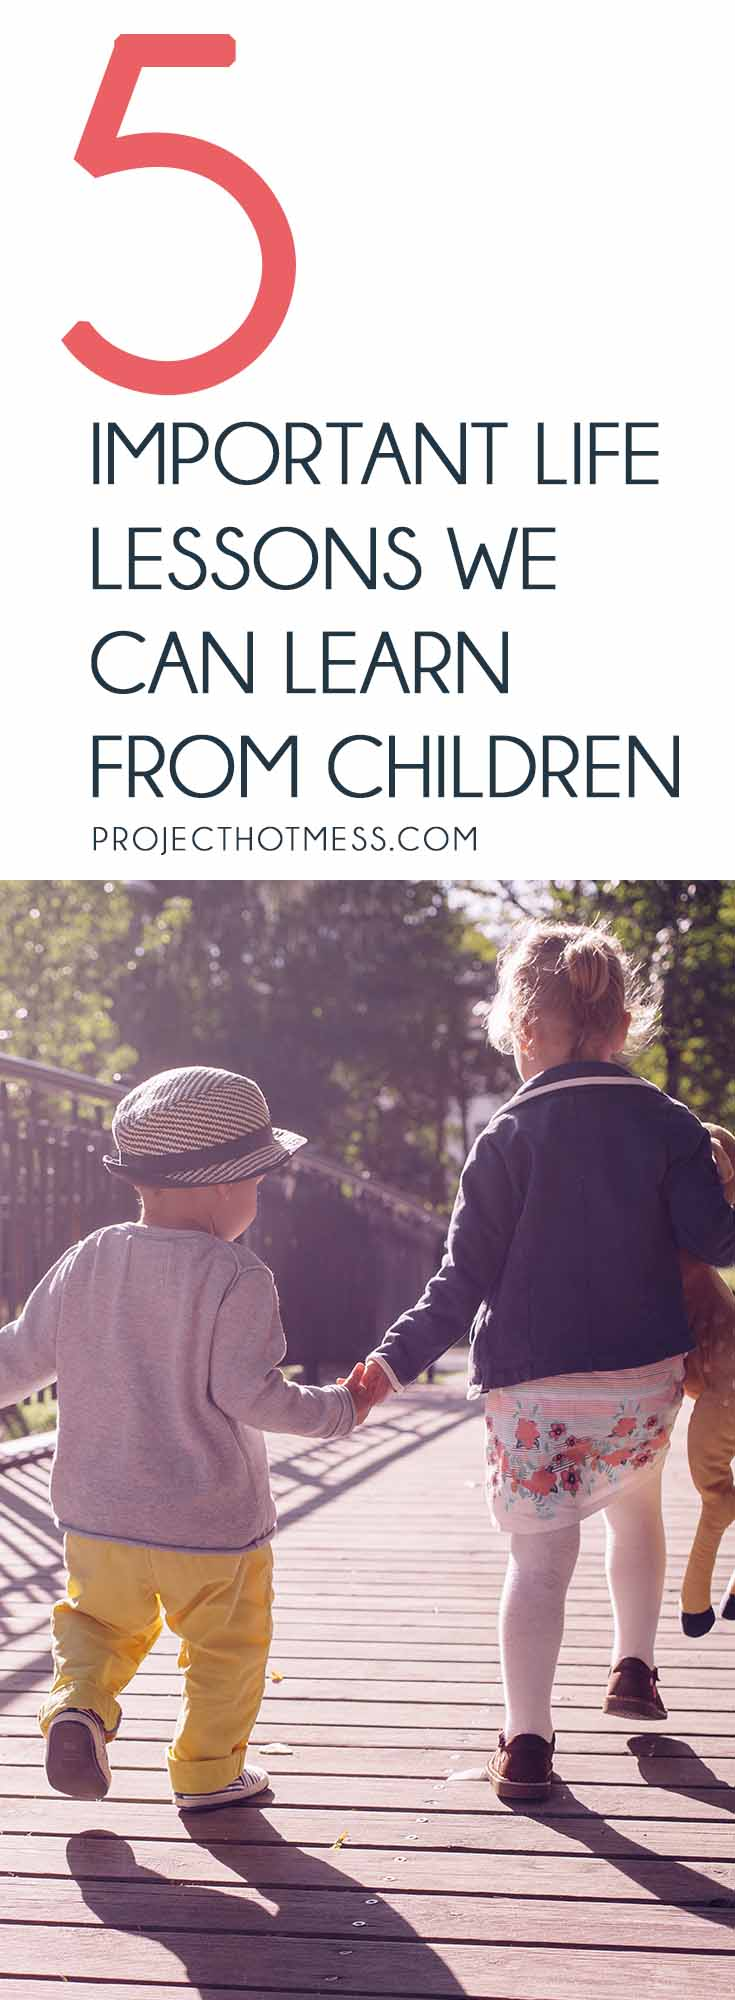 As adults, we are the ones who are supposed to be teaching our children about the world and life, but there are life lessons we can learn from children too. Parenting | Parenting Advice | Mom Life | Parenting Goals | Parenting Ideas | Parenting Tips | Parenting Types | Parenting Hacks | Positive Parenting | Parenthood | Motherhood | Surviving Motherhood | Life Lessons